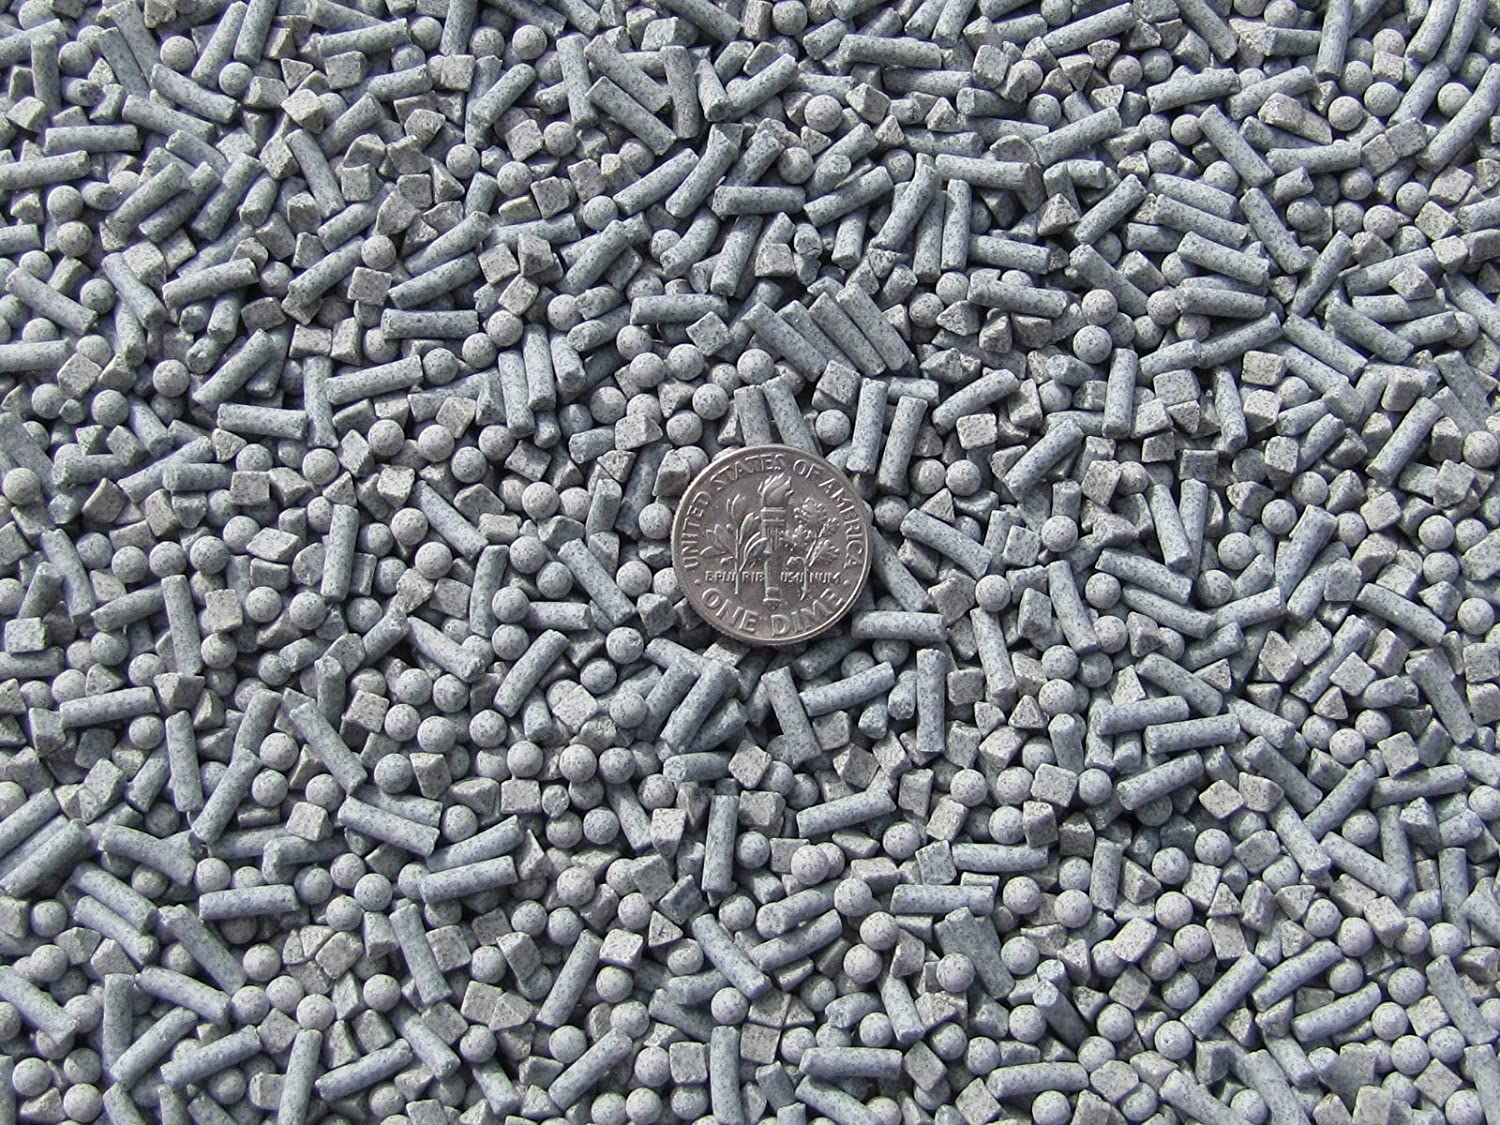 6 Lb 3 mm Sphere /& 2.5 X 8 mm Pins Fast Cutting Abrasive Ceramic Porcelain Tumbling Tumbler Tumble Media 3 mm Triangle